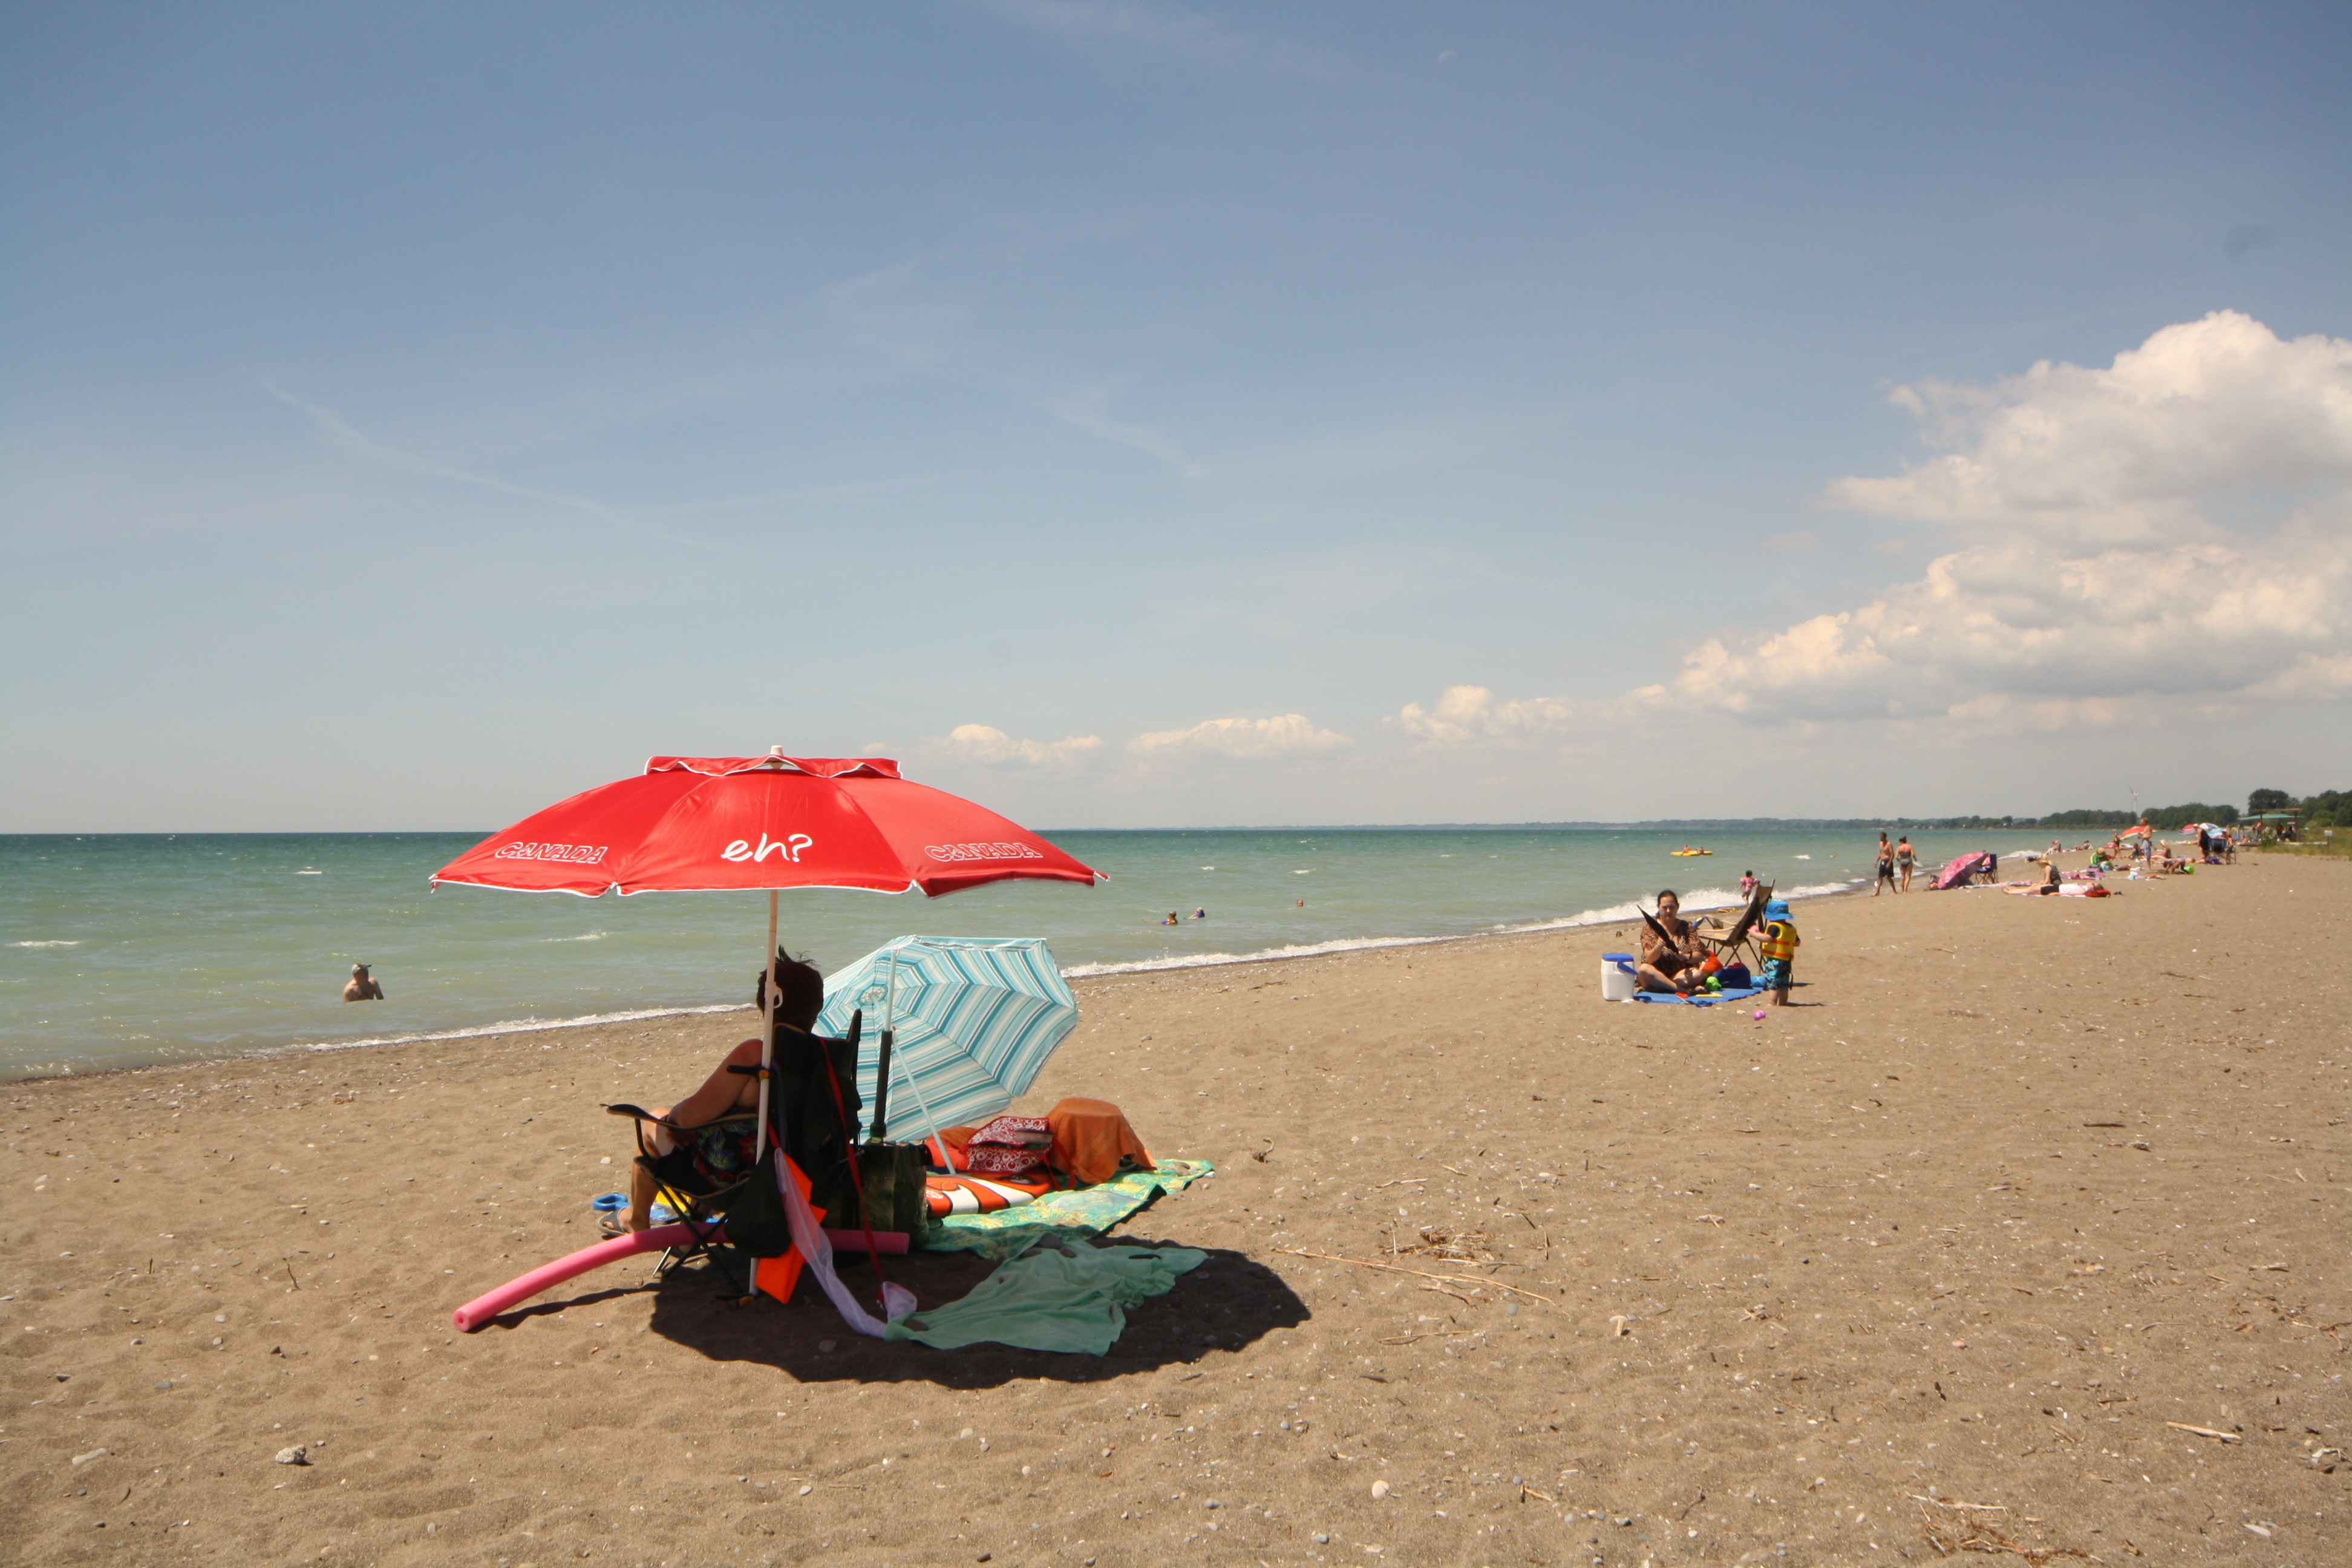 The beach at Erieau is a beauty. The water's nice and warm in summer, too. JIM BYERS PHOTO